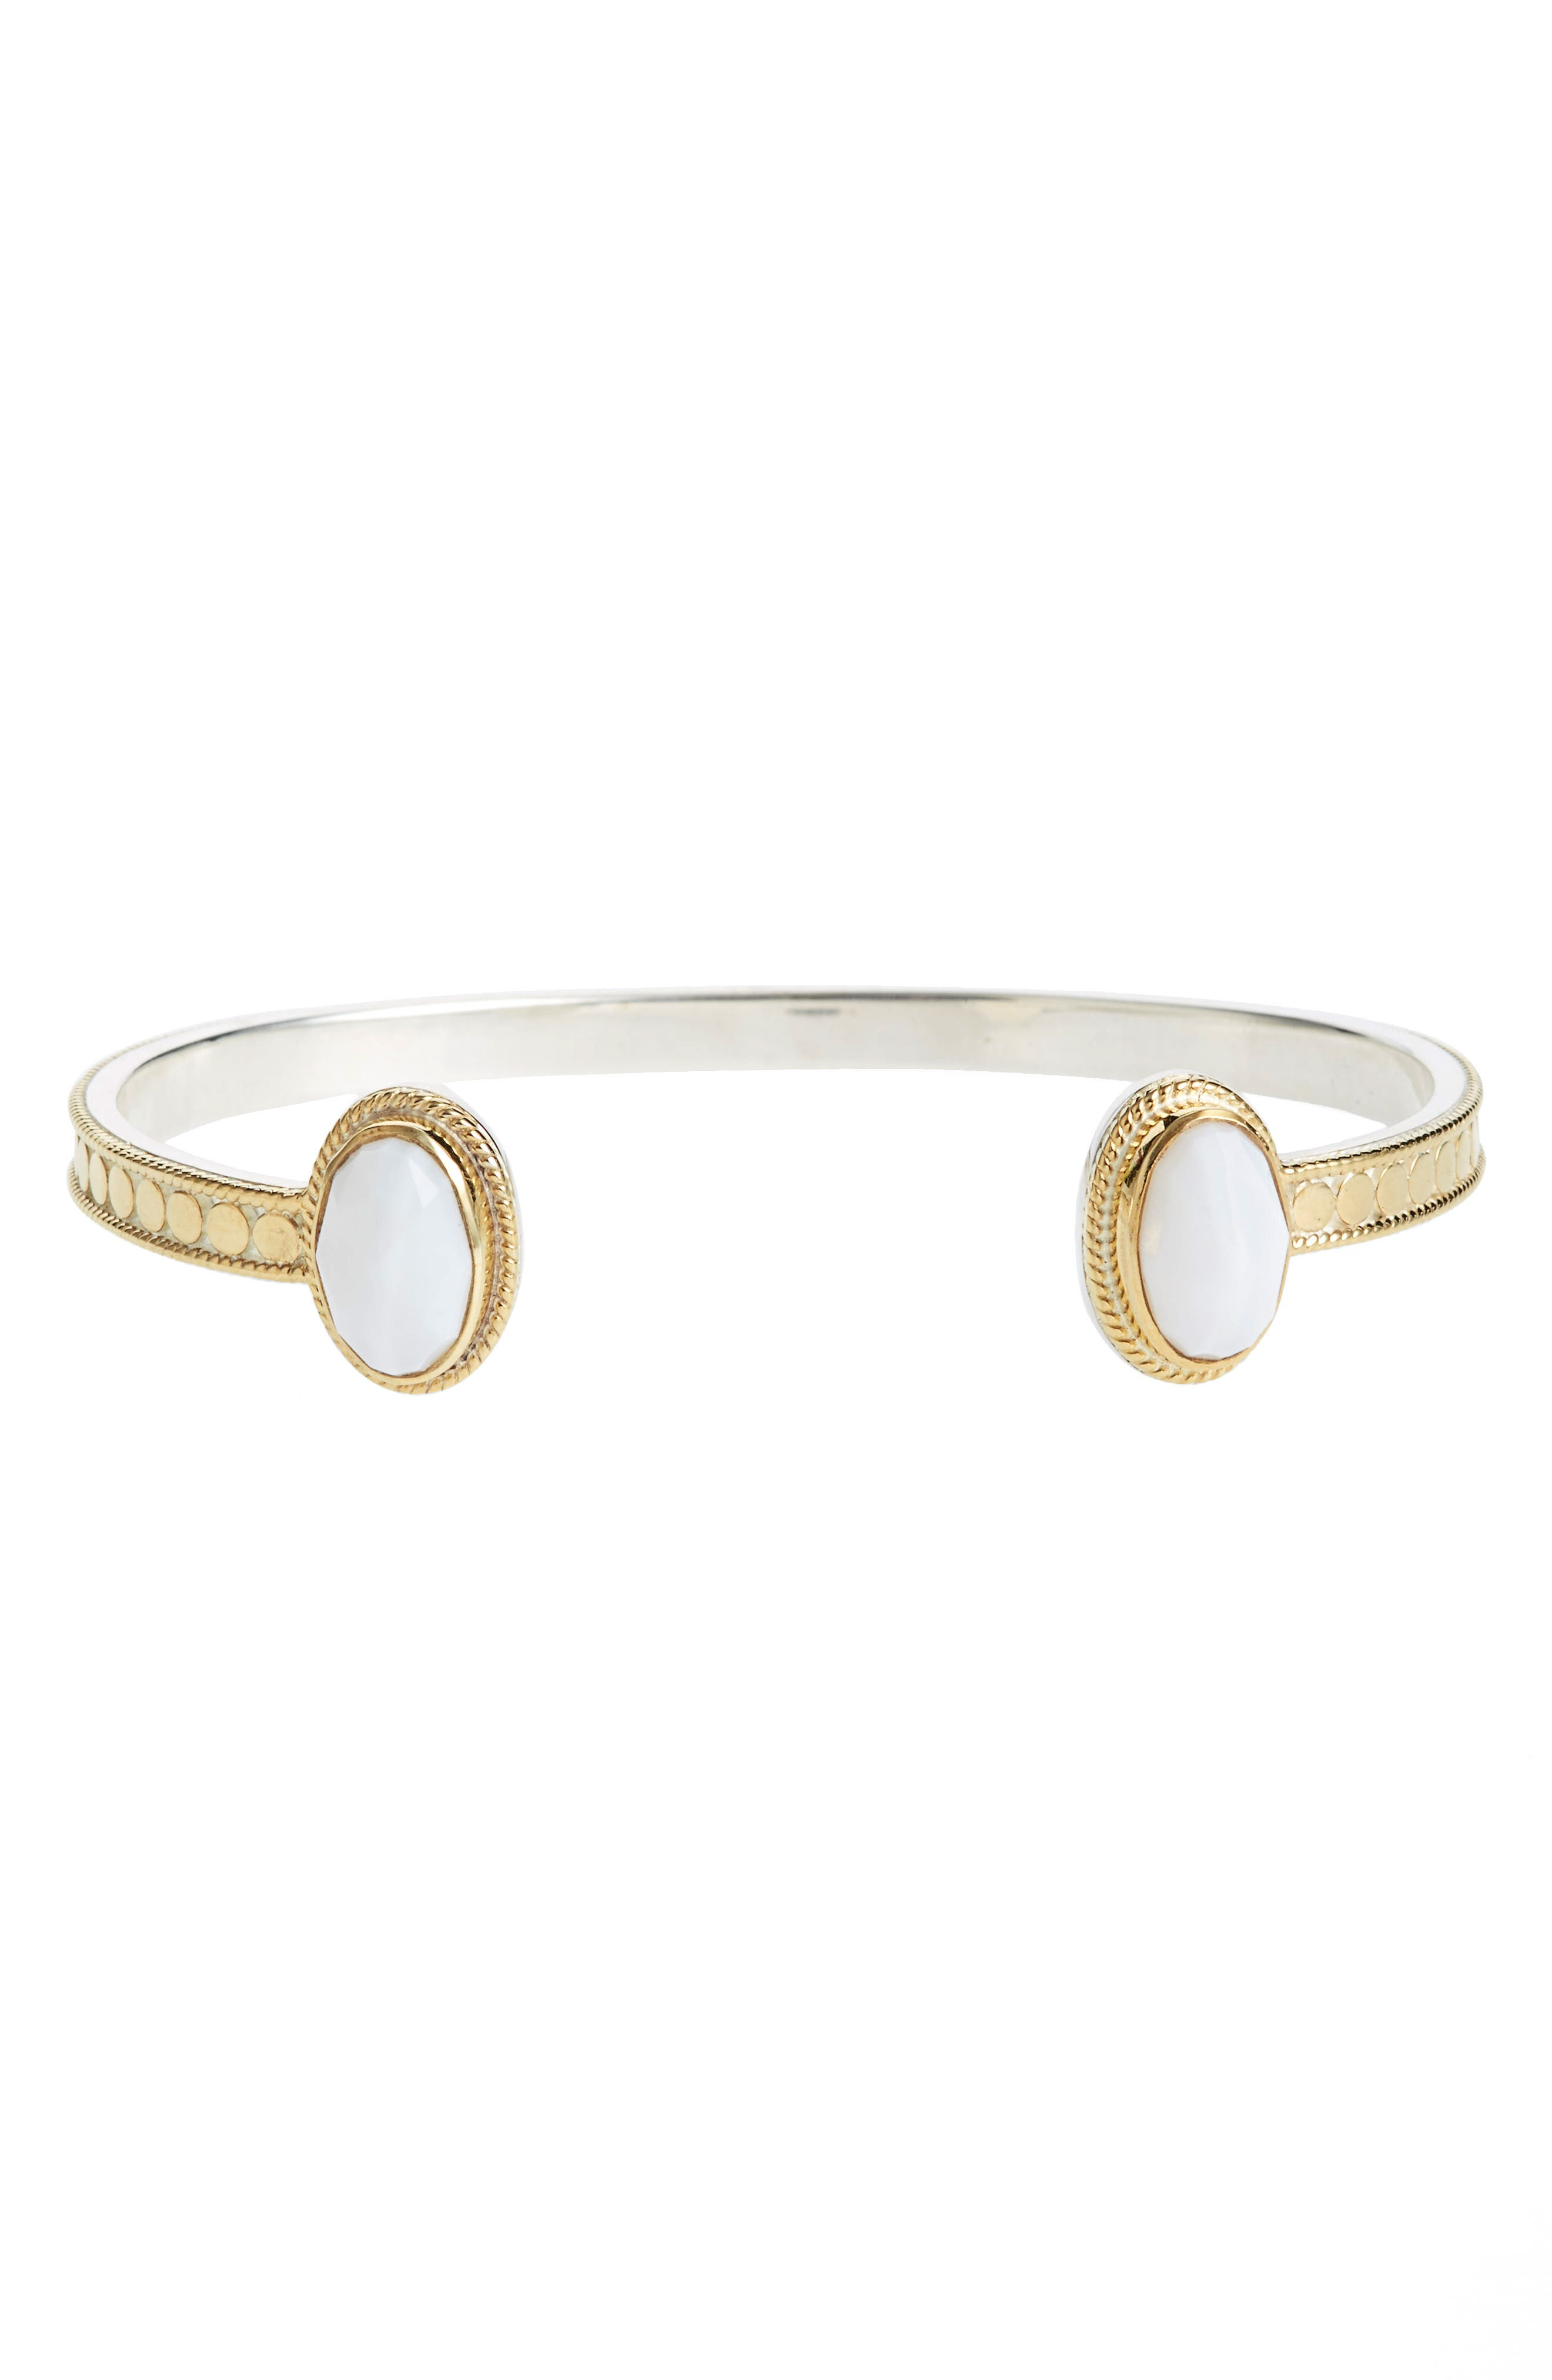 Alternate Image 1 Selected - Anna Beck White Opal Cuff